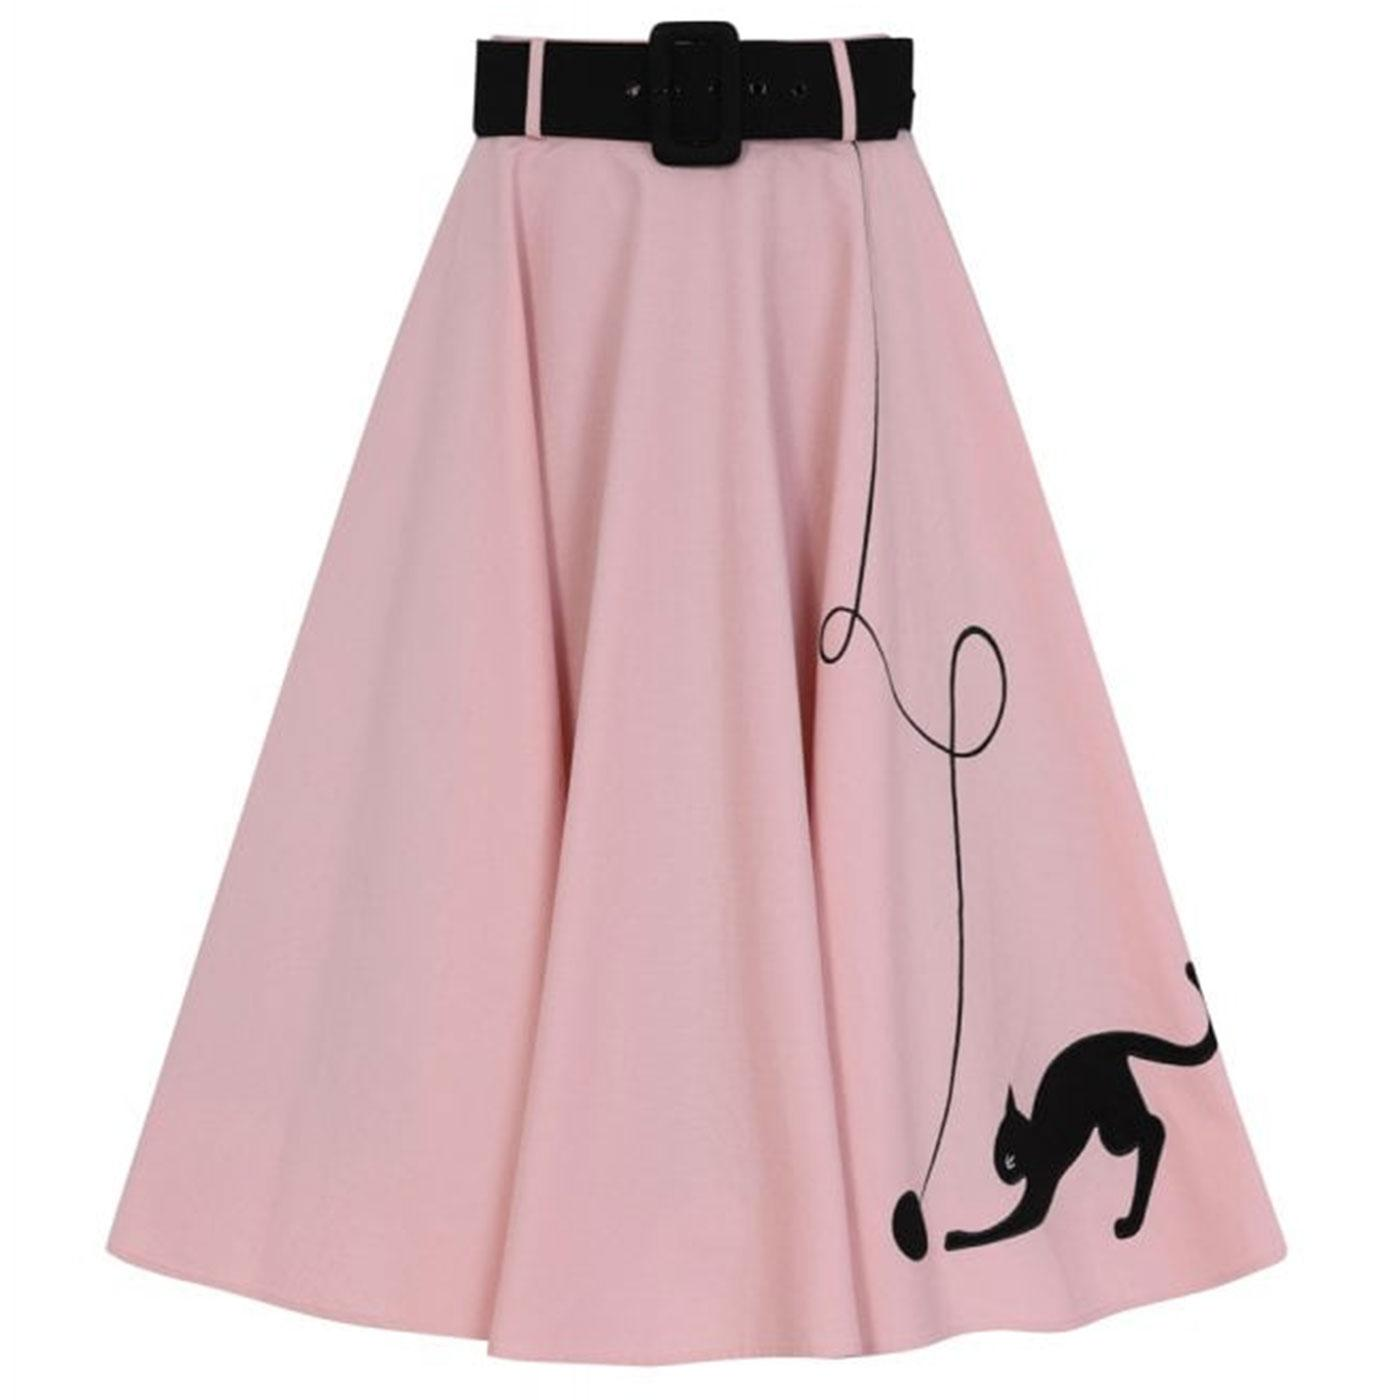 Kitty Cat COLLECTIF Retro 50s Vintage Swing Skirt